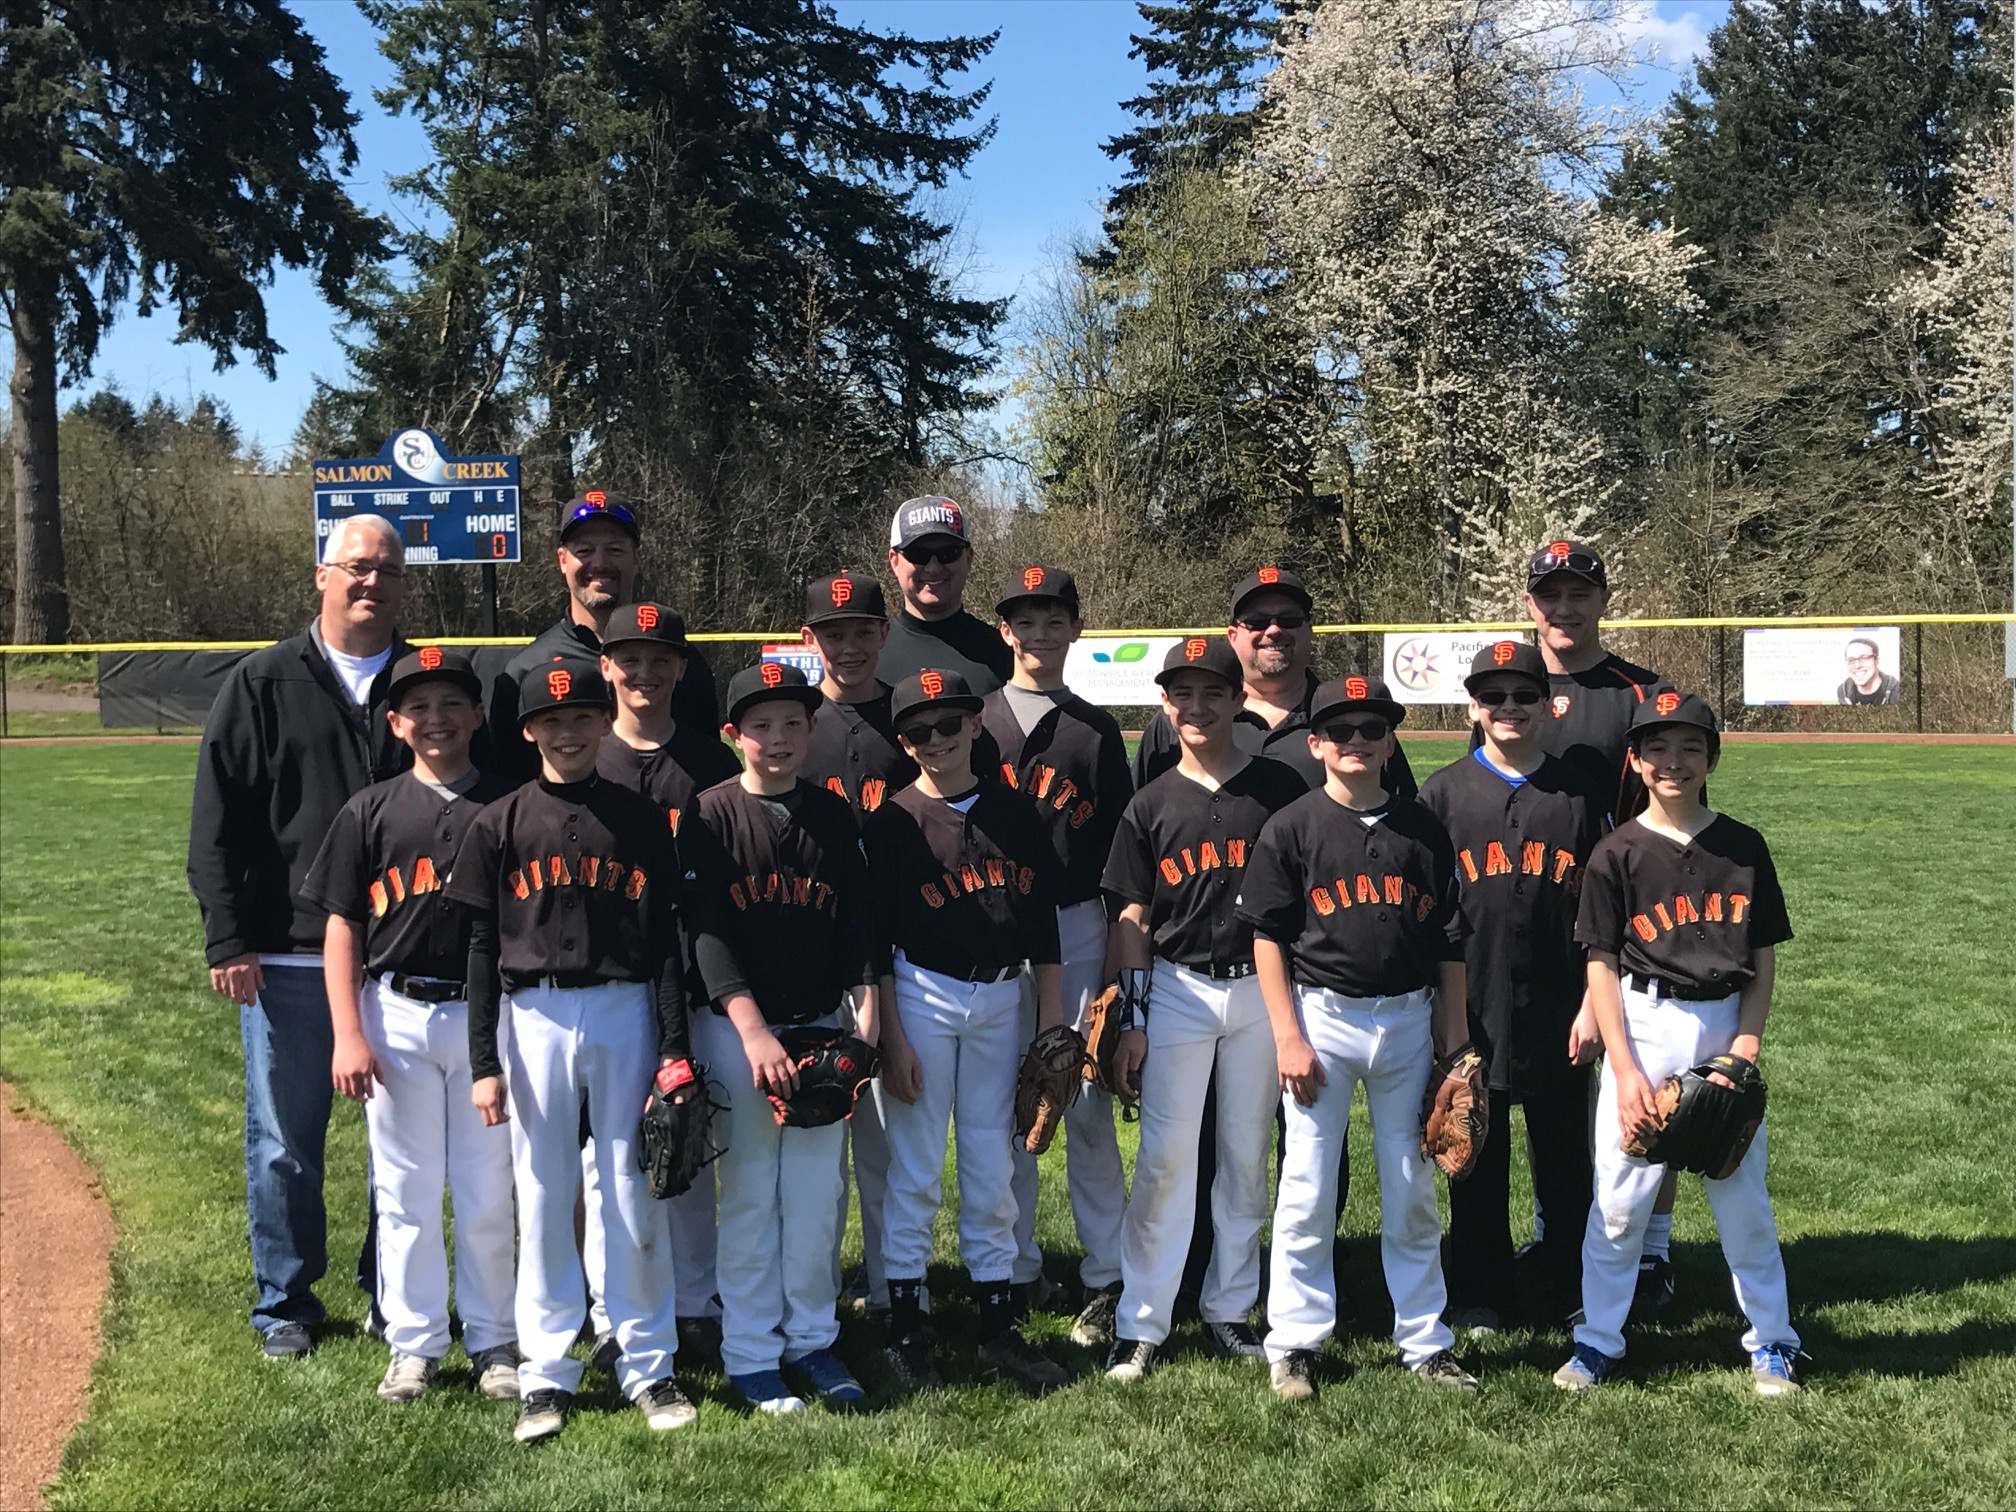 Dr.Bowyer with Salmon Creek Little League Team